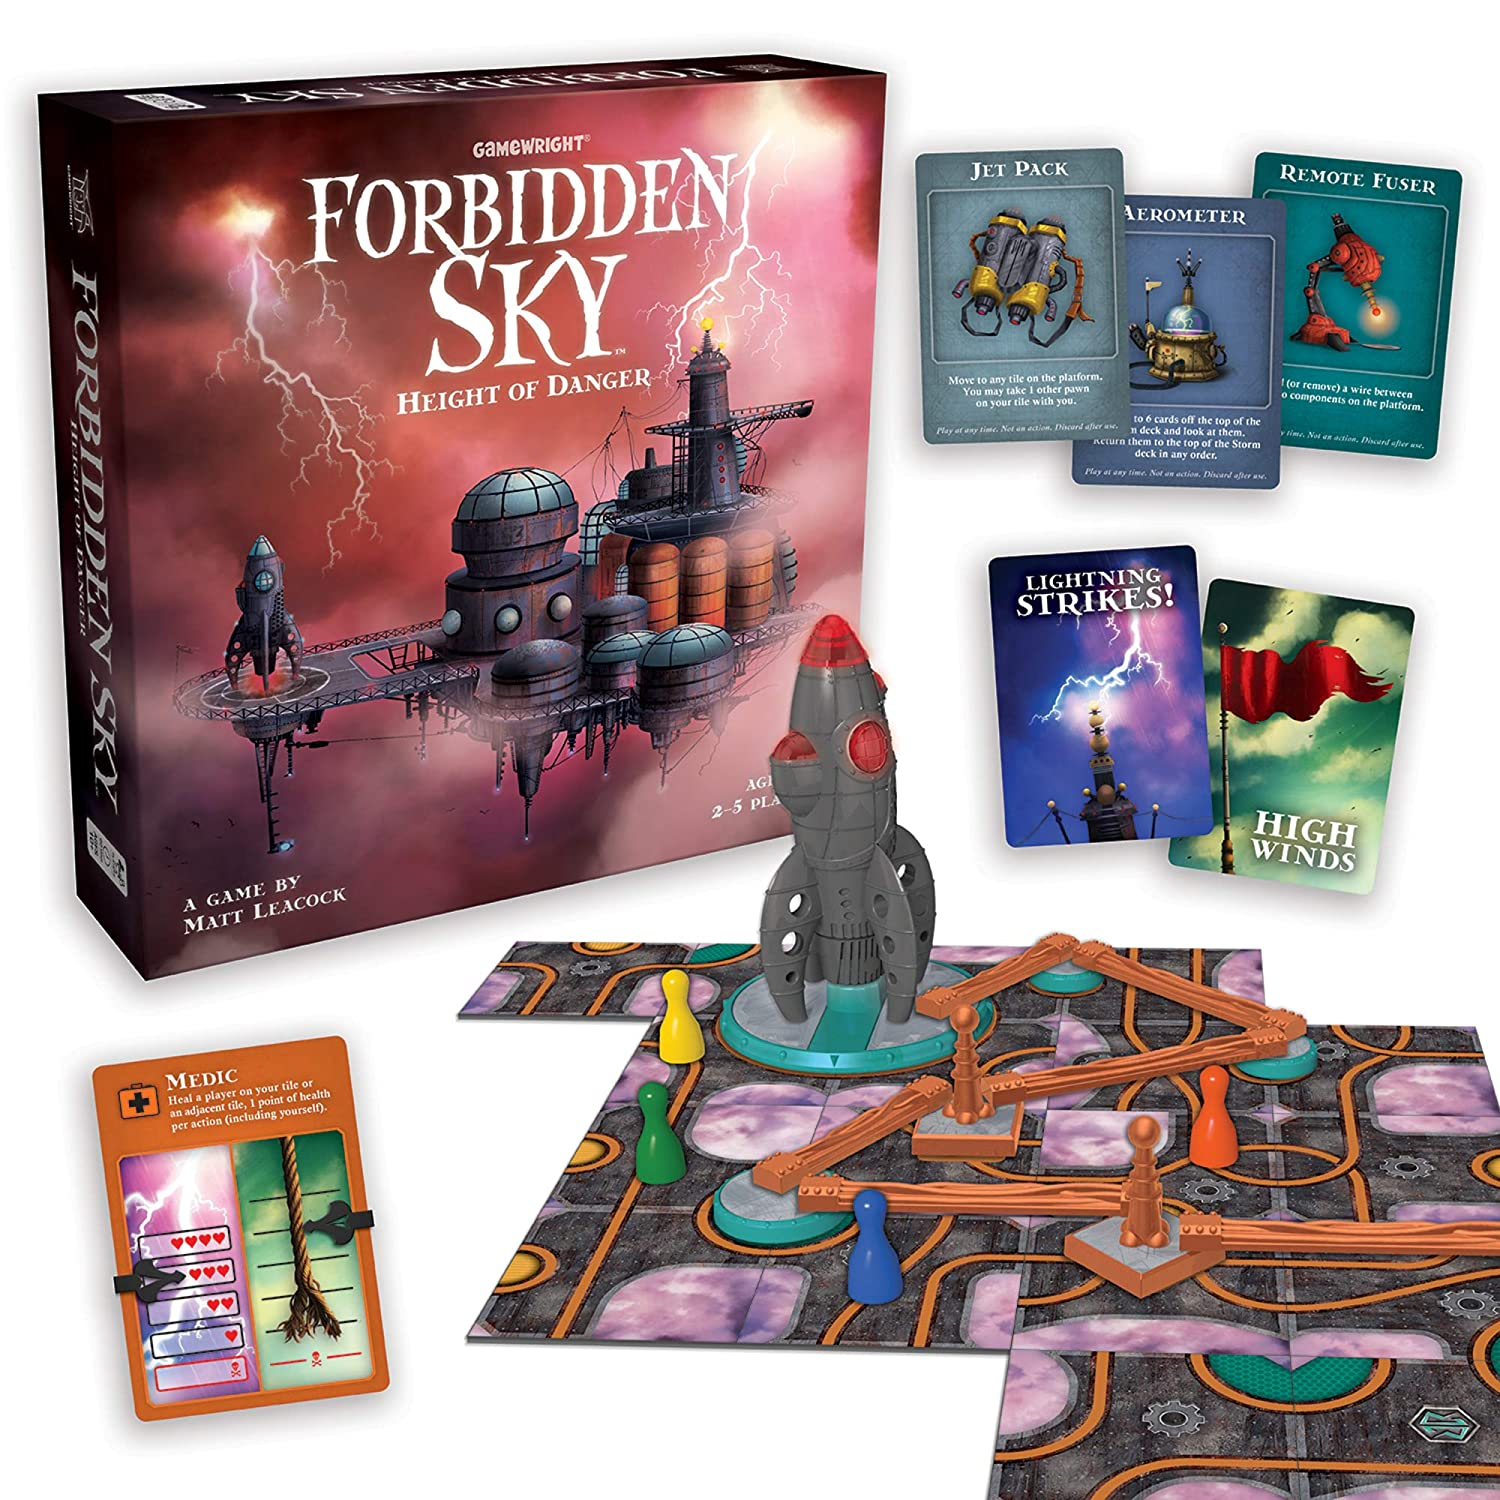 GameWright 424 Forbidden Sky - Height of Danger FORS